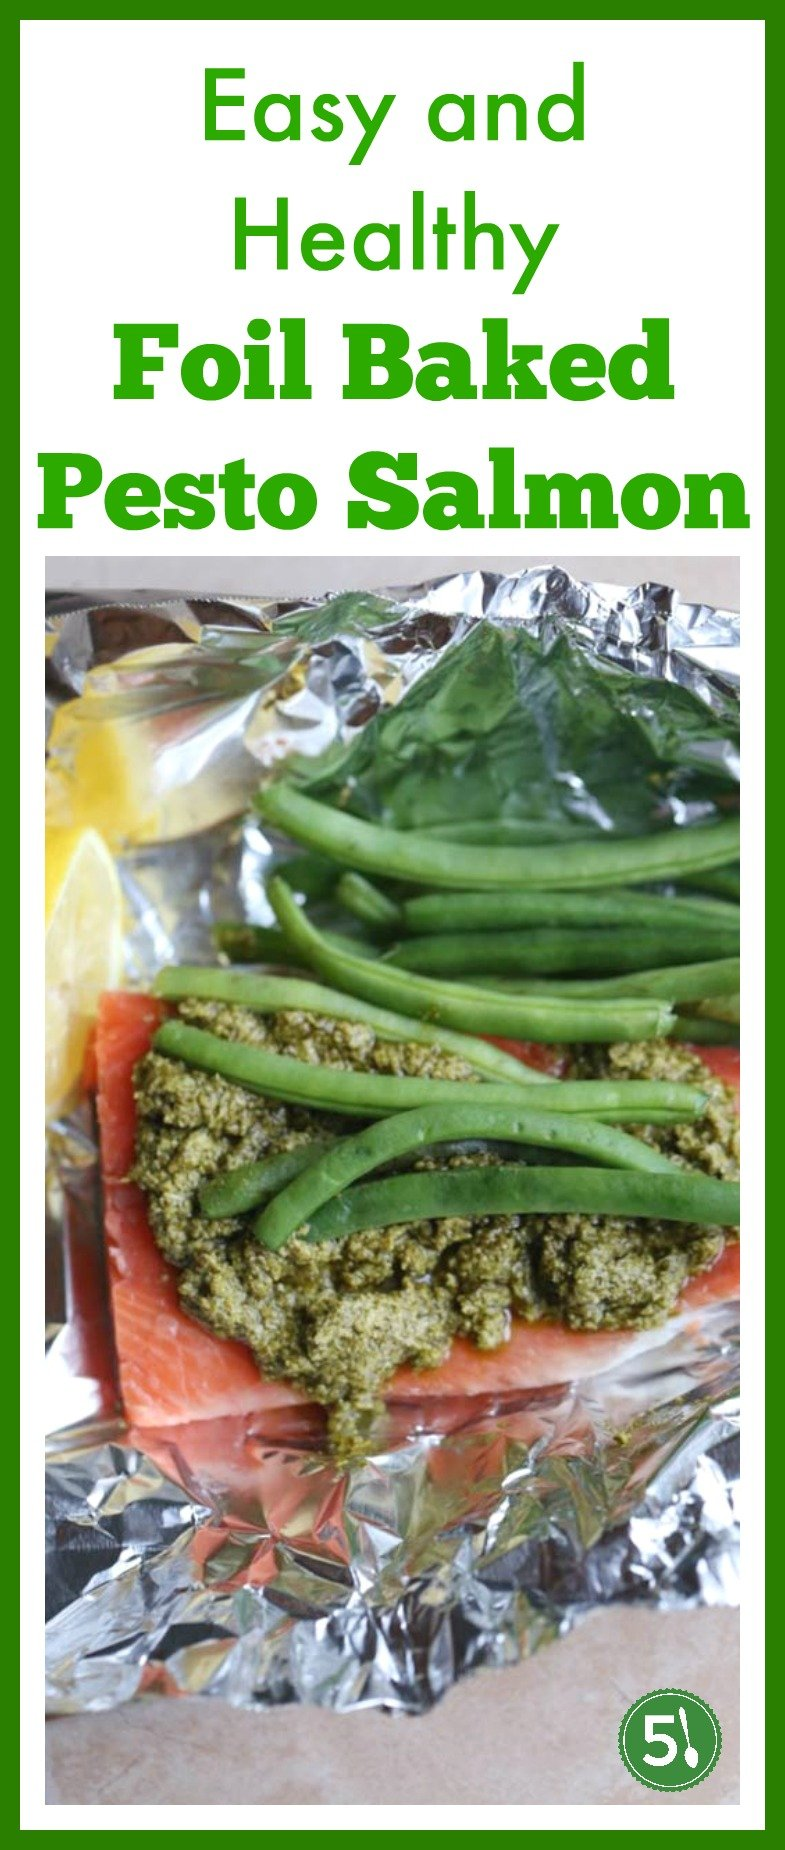 Pesto Salmon cooked in foil with fresh veggies is an easy and healthy dinner you can whip up in under 30 minutes.